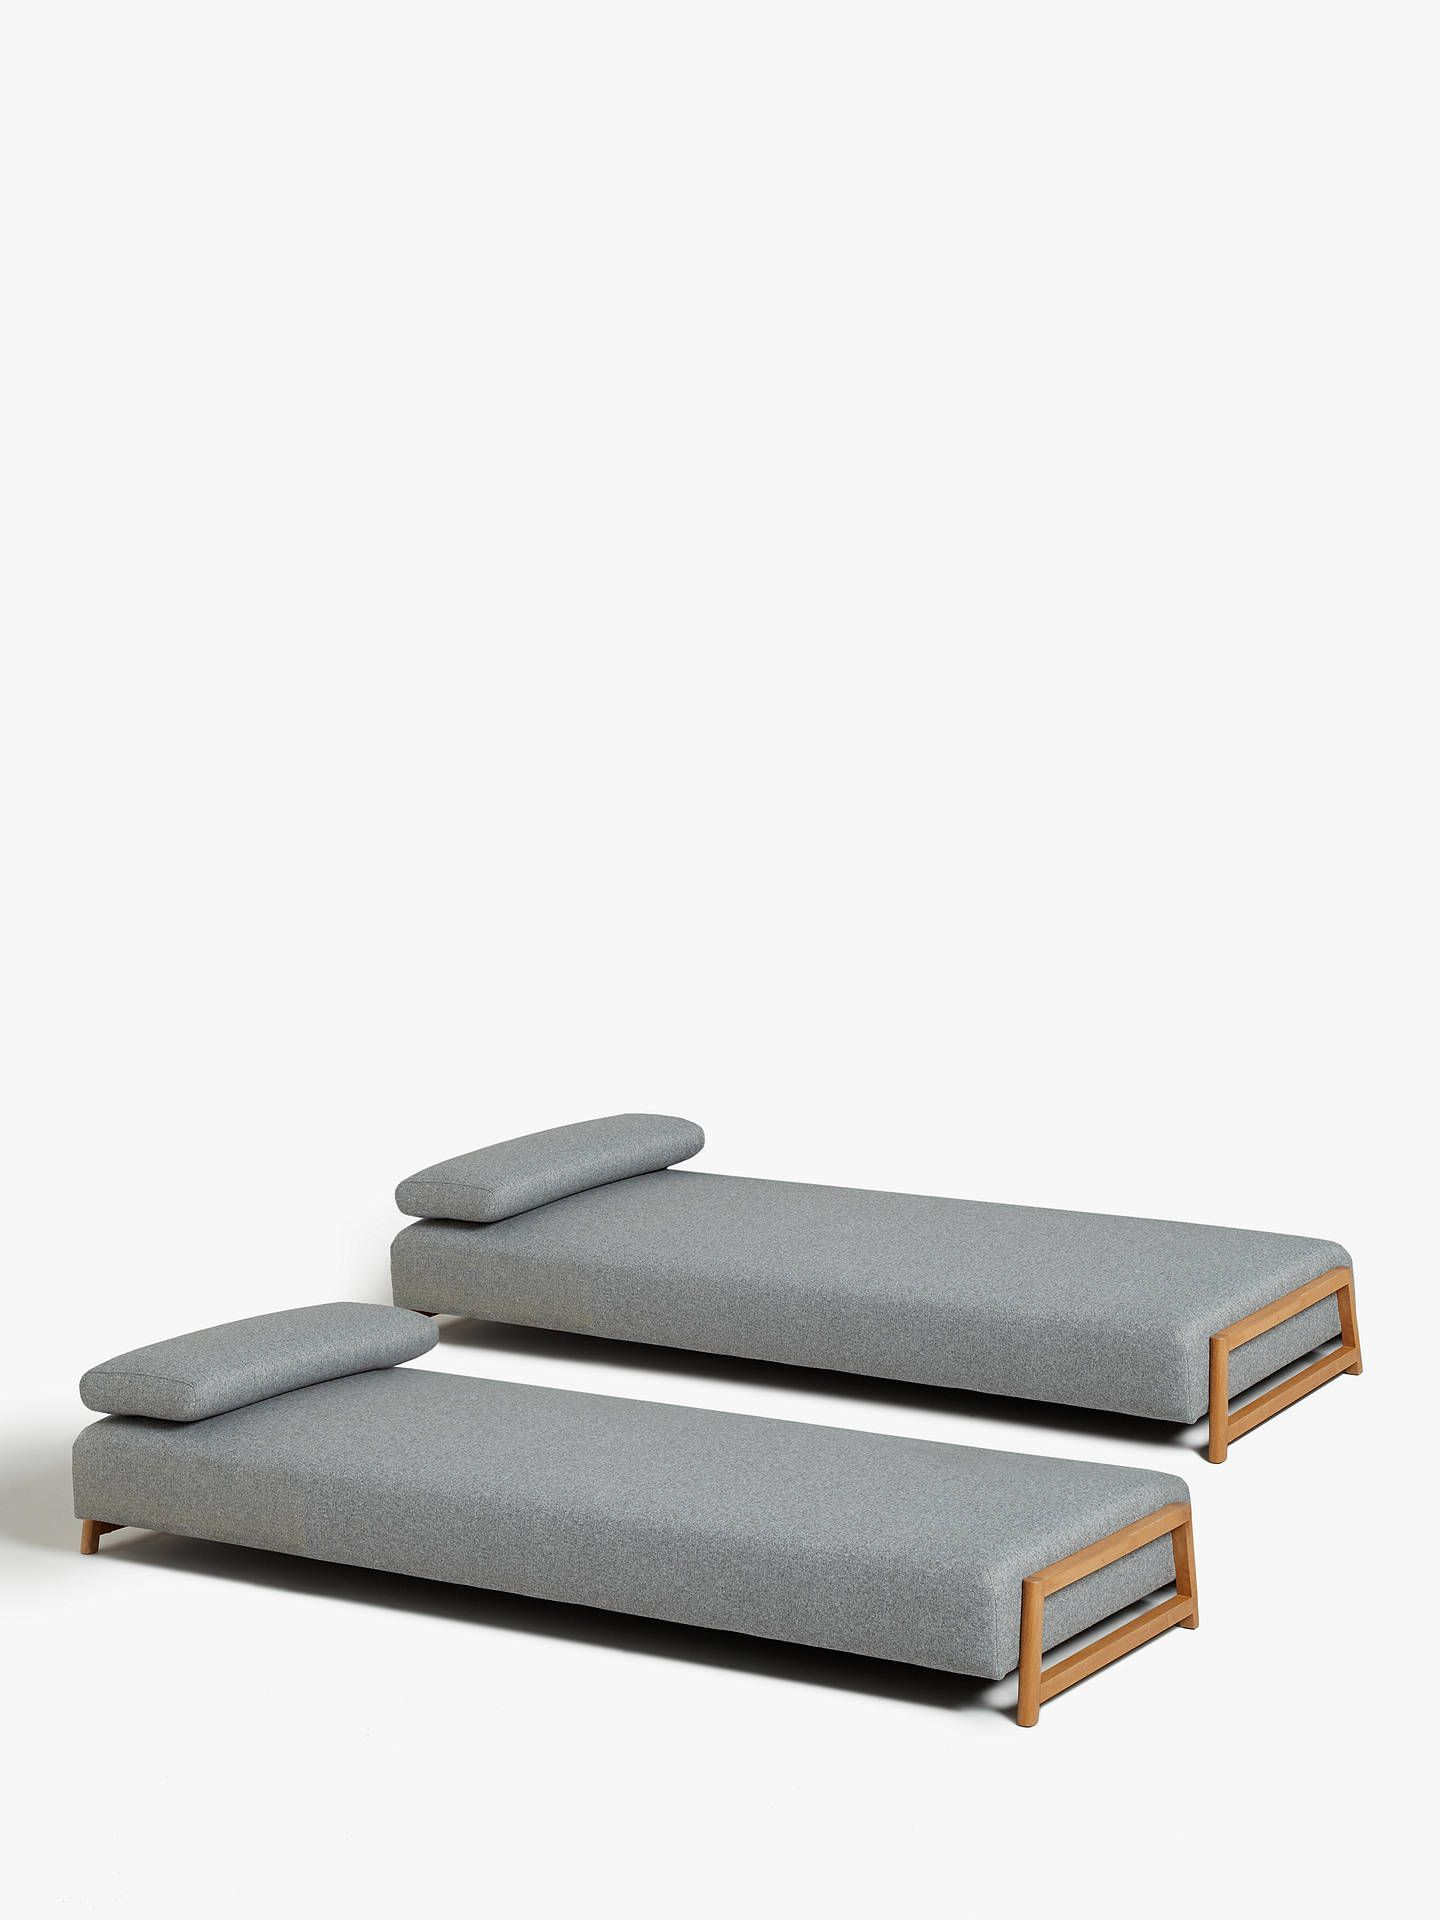 John Lewis & Partners Duplet Daybed Daybed, King size